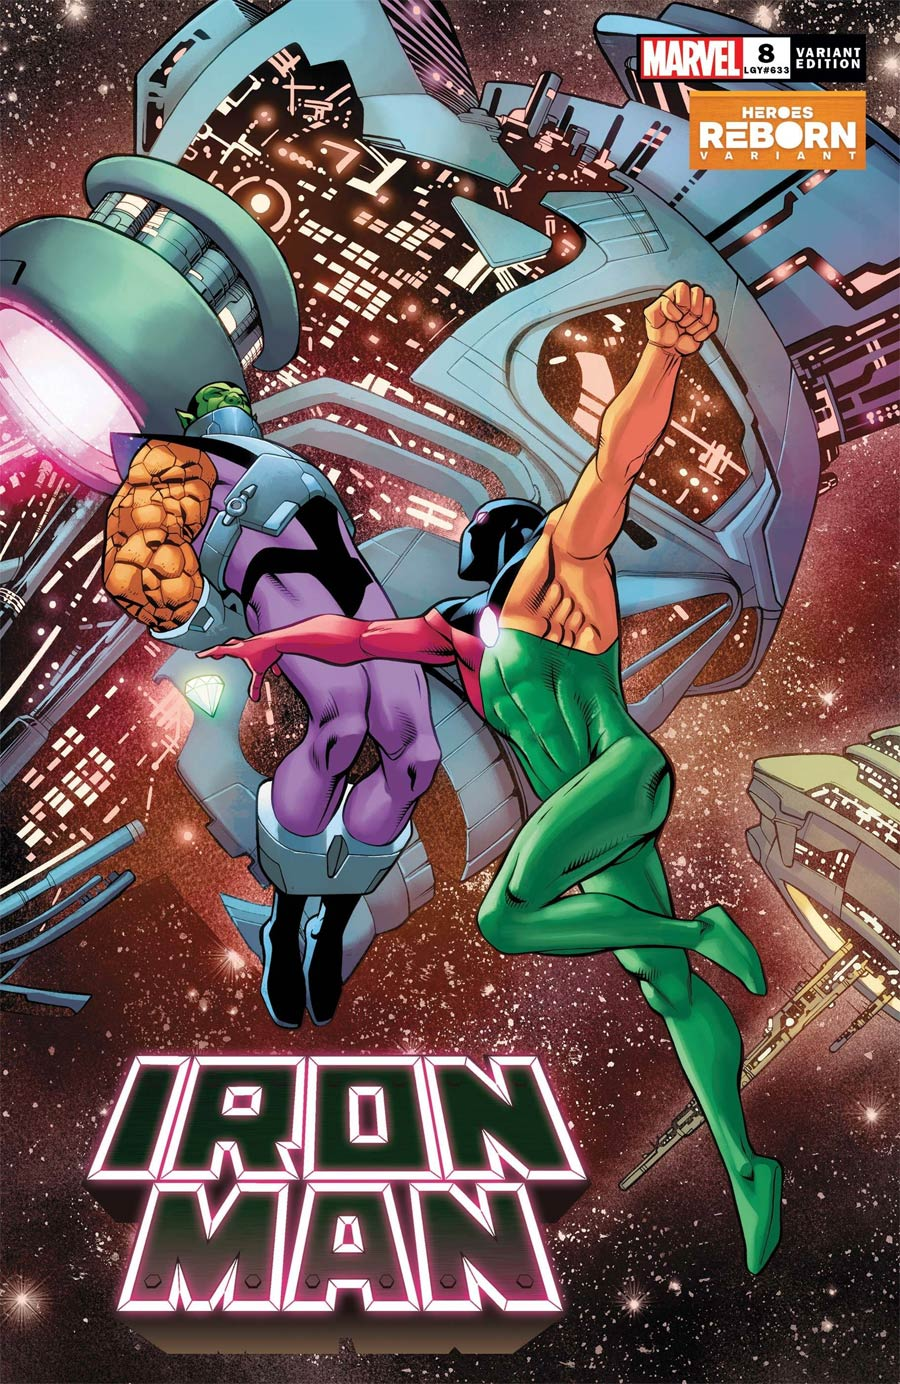 Iron Man Vol 6 #8 Cover B Variant Carlos Pacheco Heroes Reborn Cover